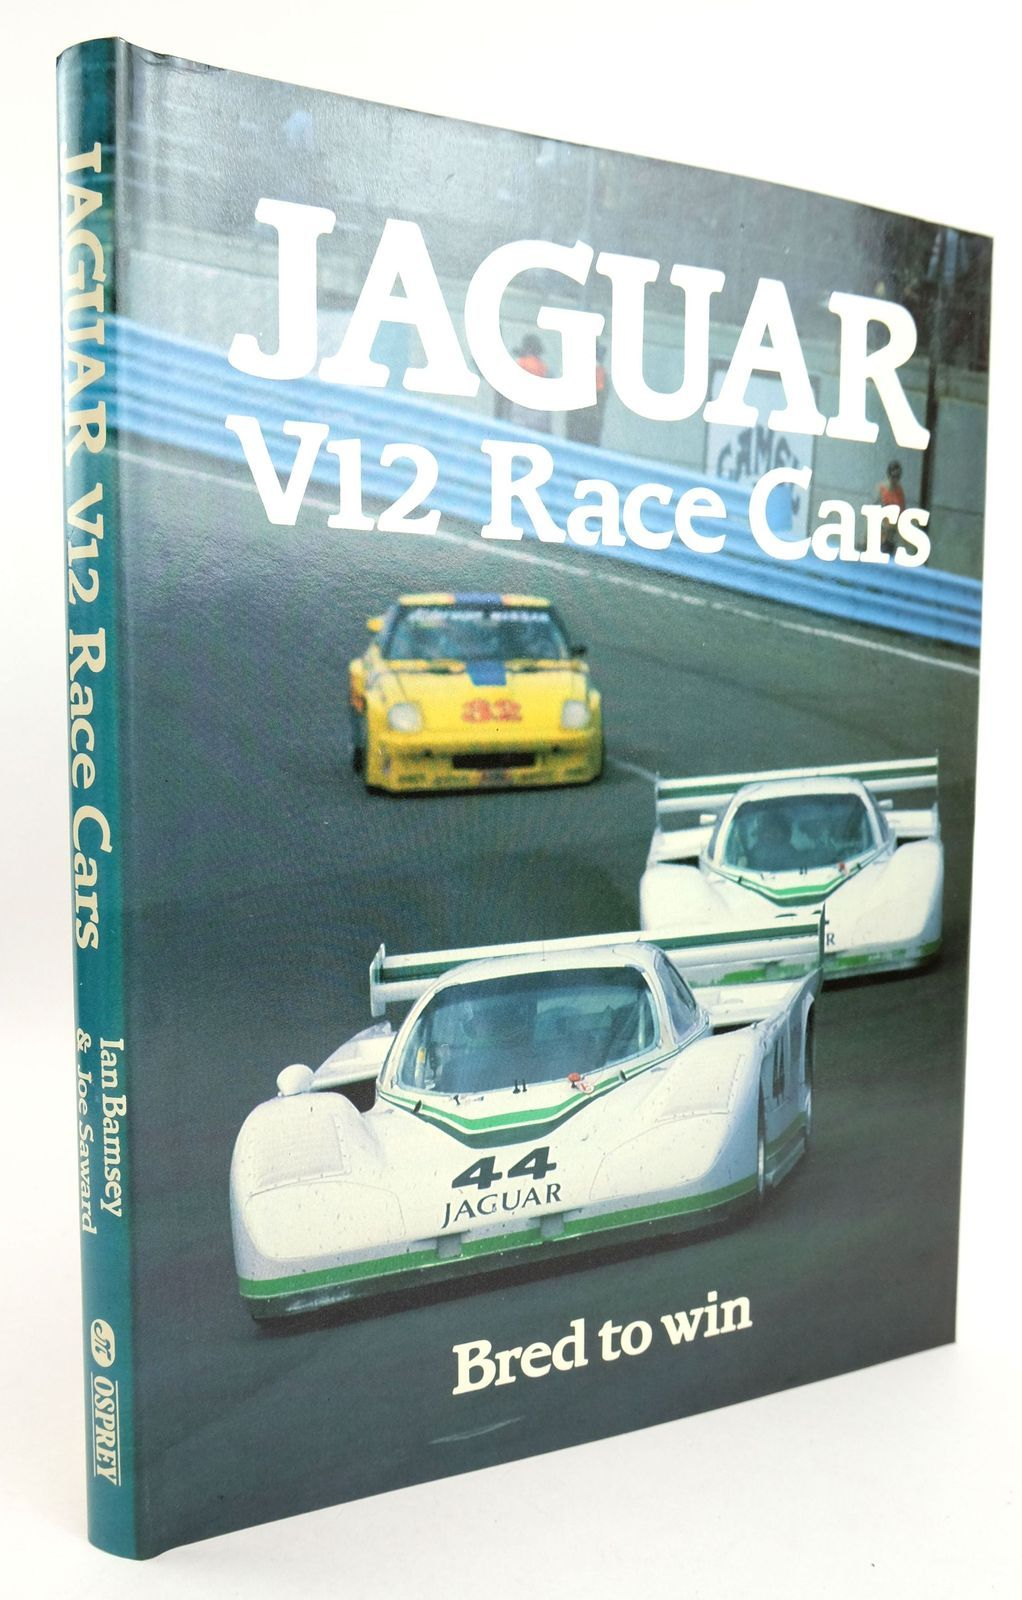 Photo of JAGUAR V12 RACE CARS written by Bamsey, Ian Saward, Joe published by Osprey Publishing (STOCK CODE: 1819132)  for sale by Stella & Rose's Books